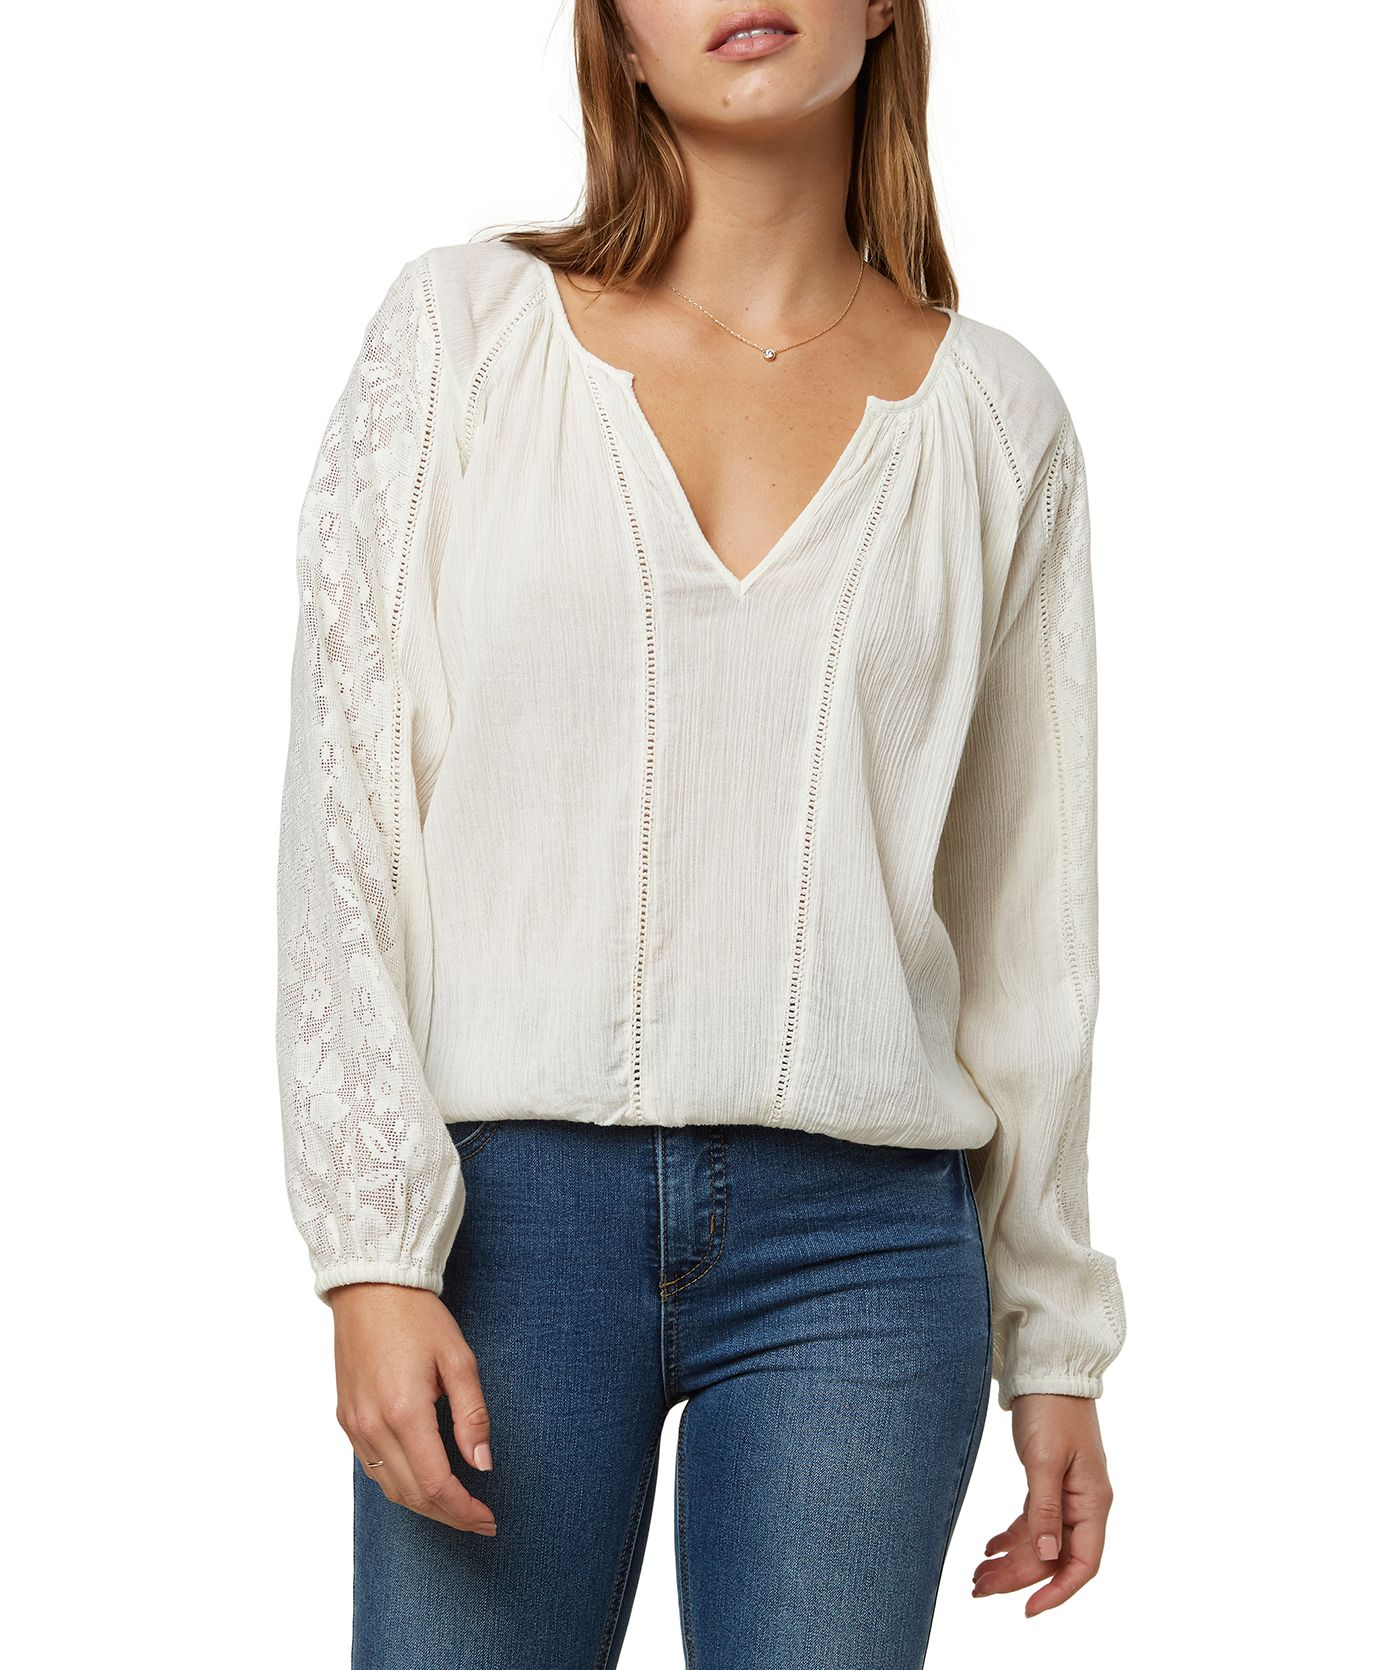 O'Neill Women's Lariviere Top